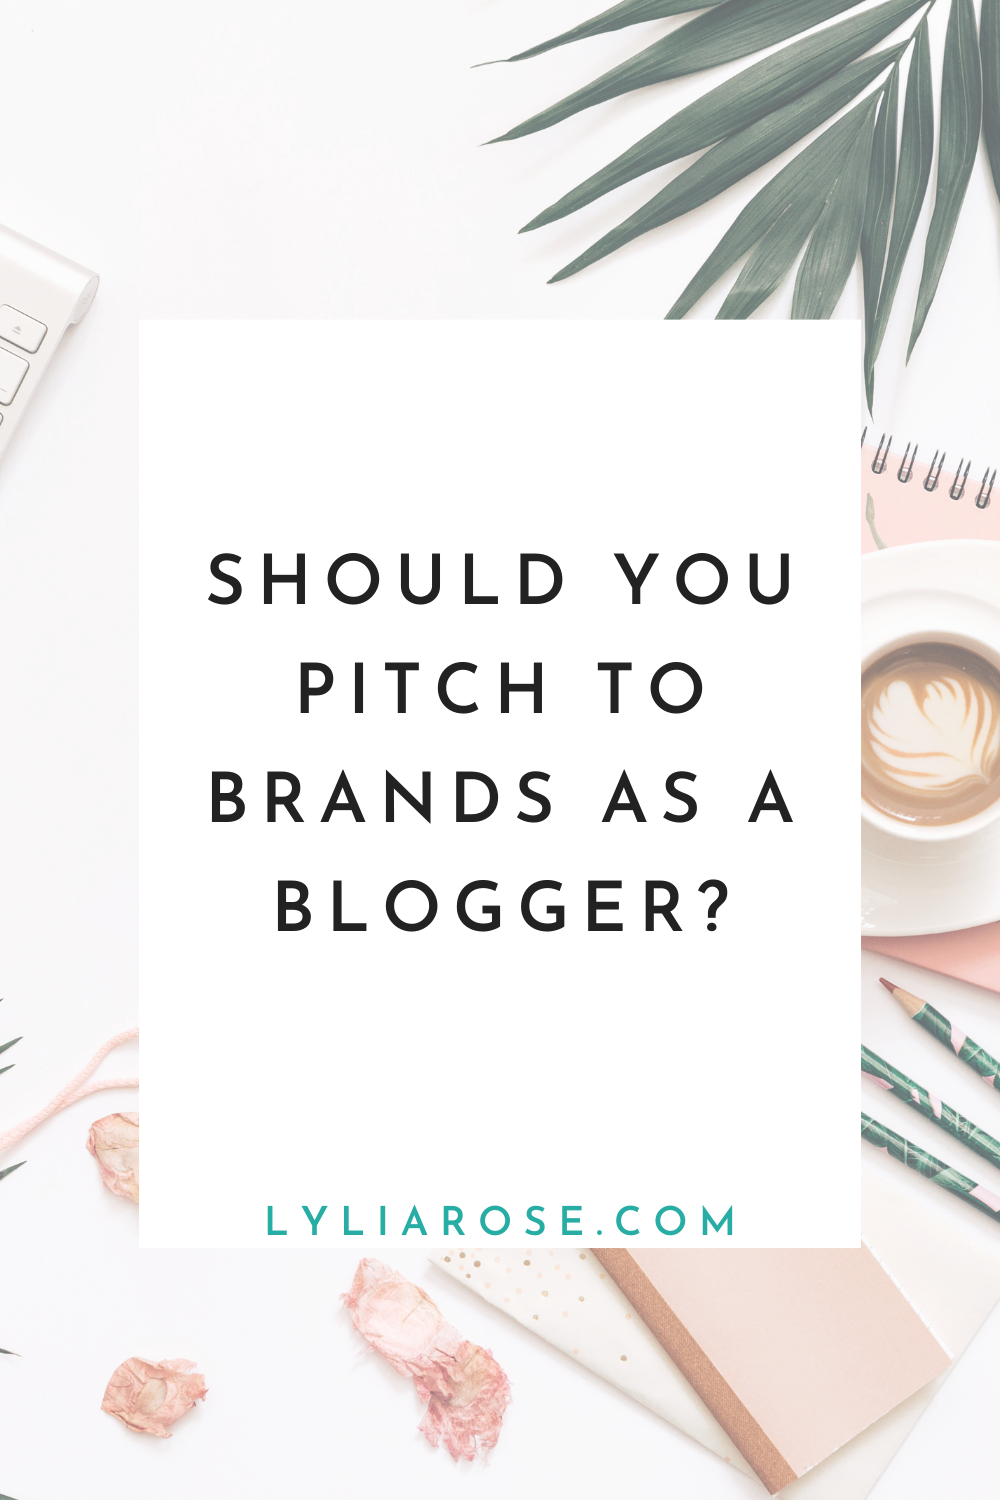 Should you pitch to brands as a blogger